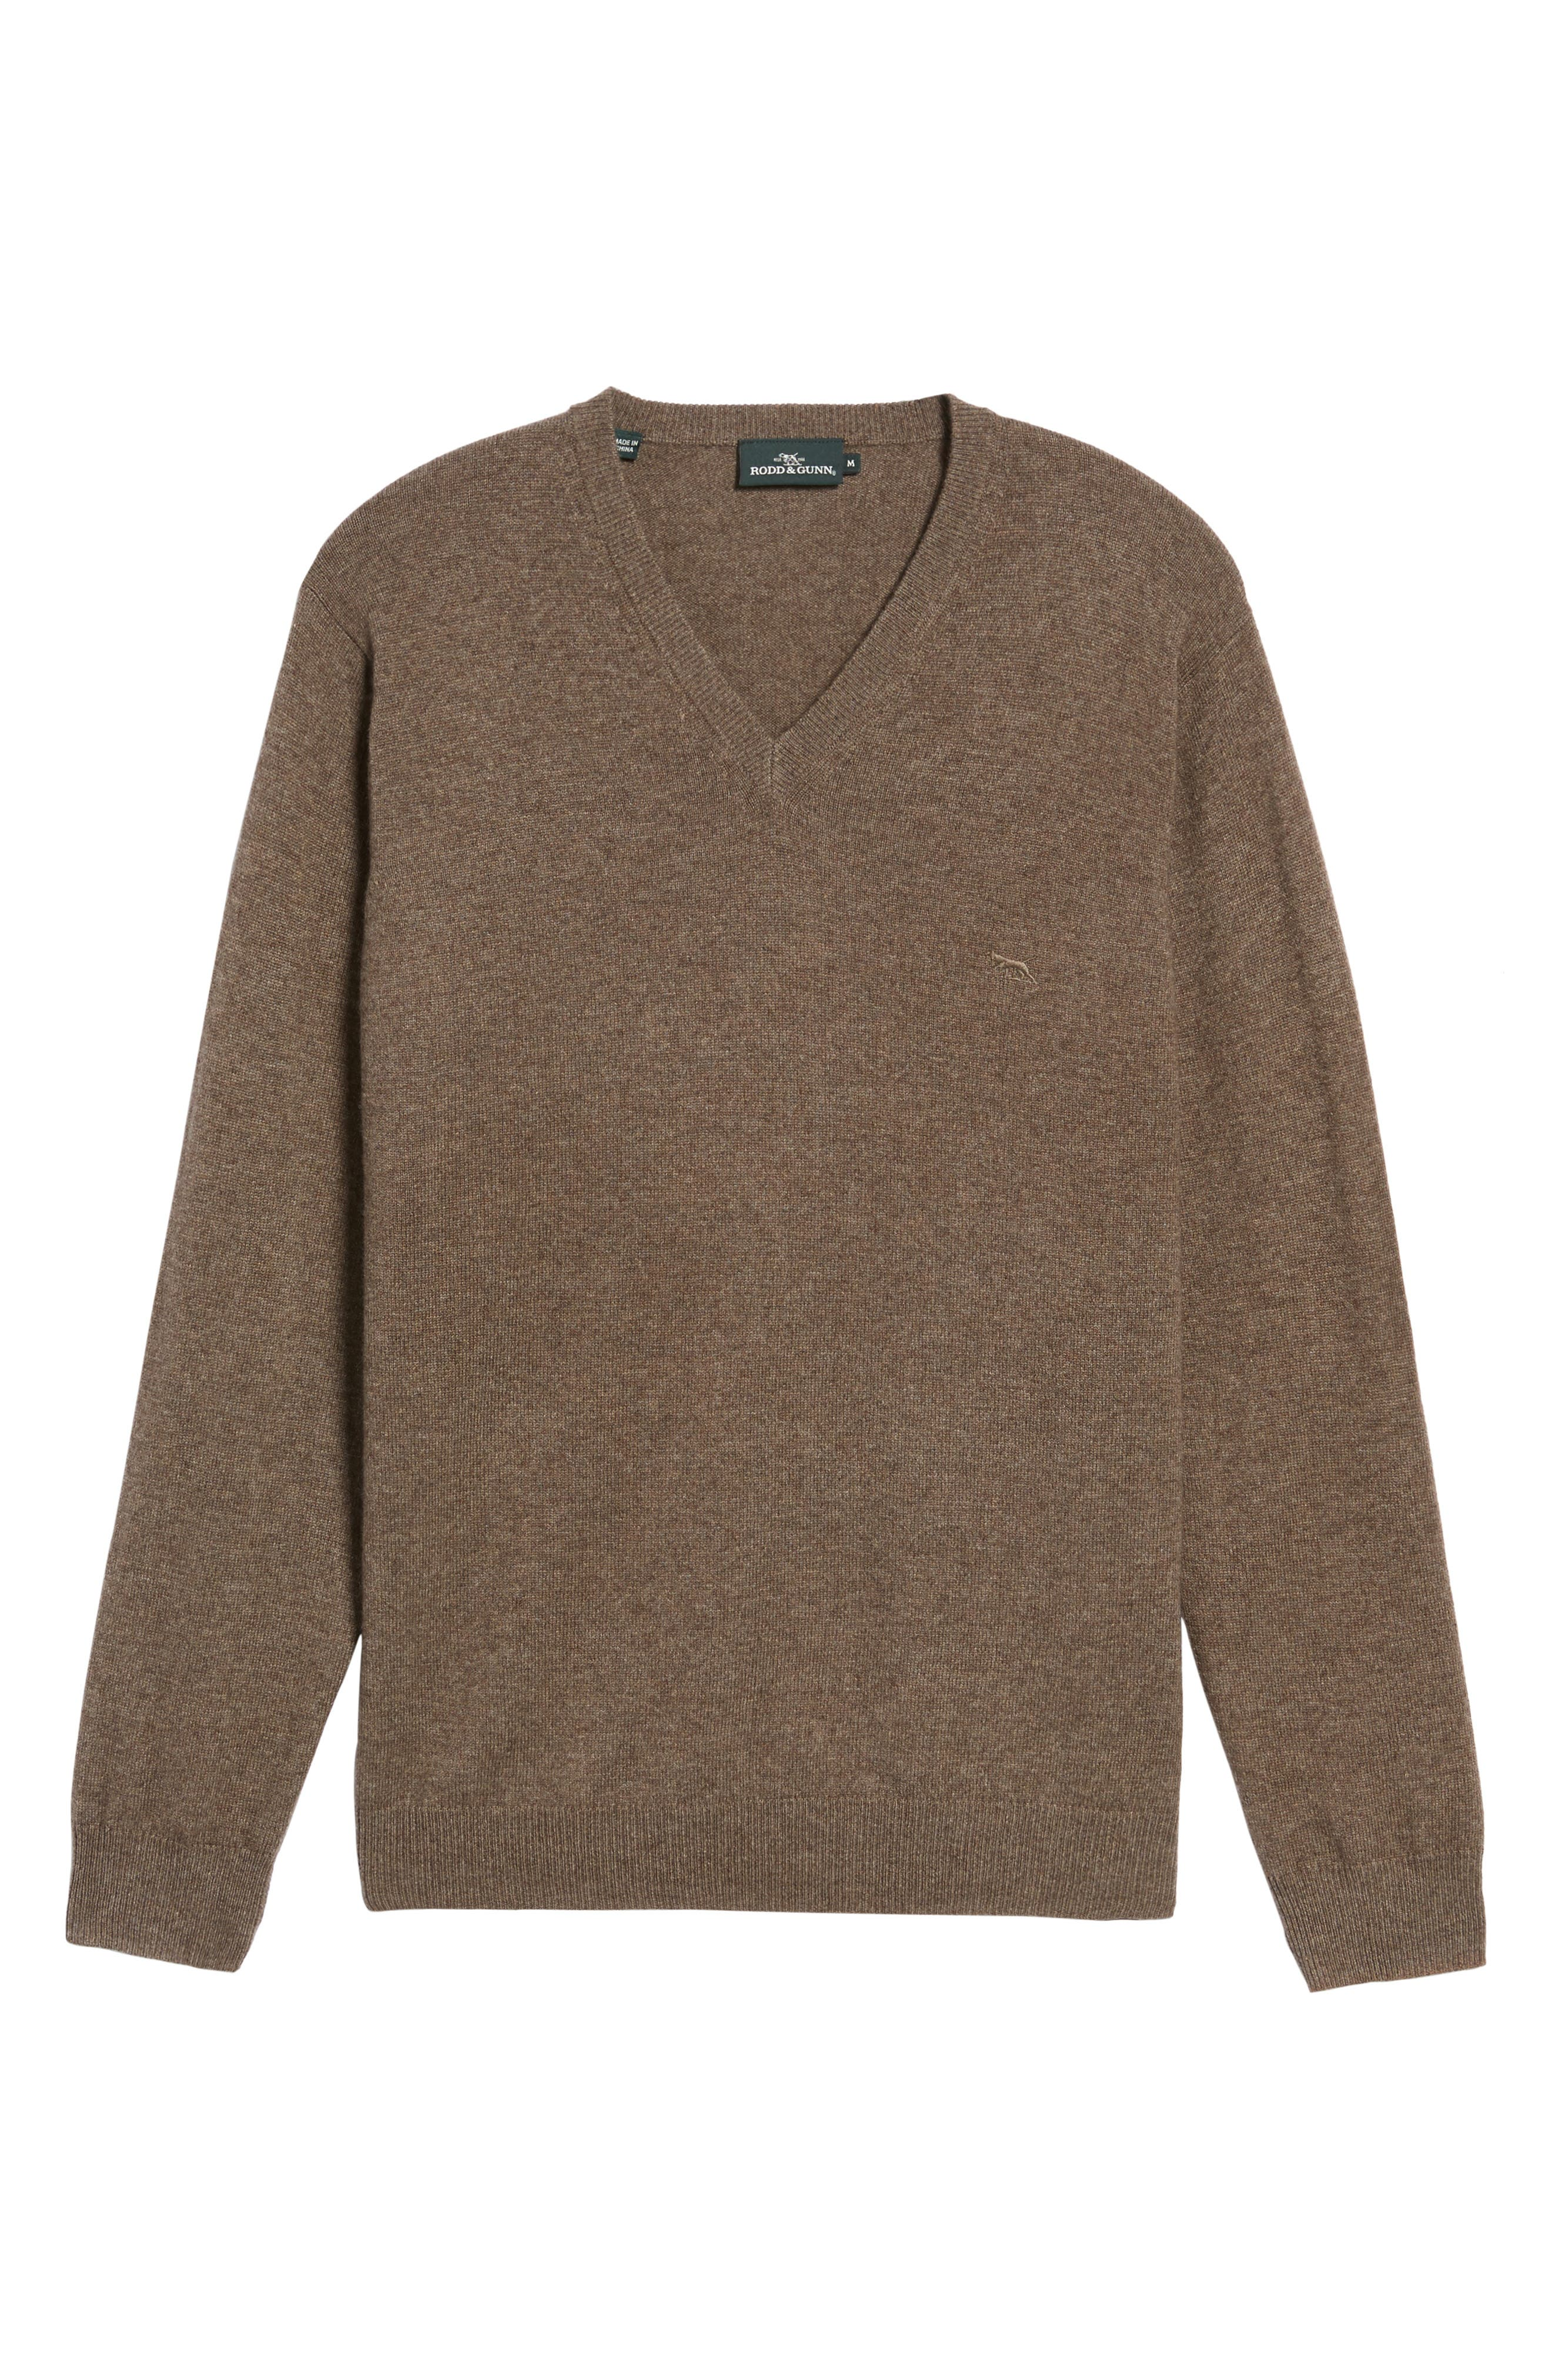 'Inchbonnie' Wool & Cashmere V-Neck Sweater,                             Alternate thumbnail 6, color,                             218